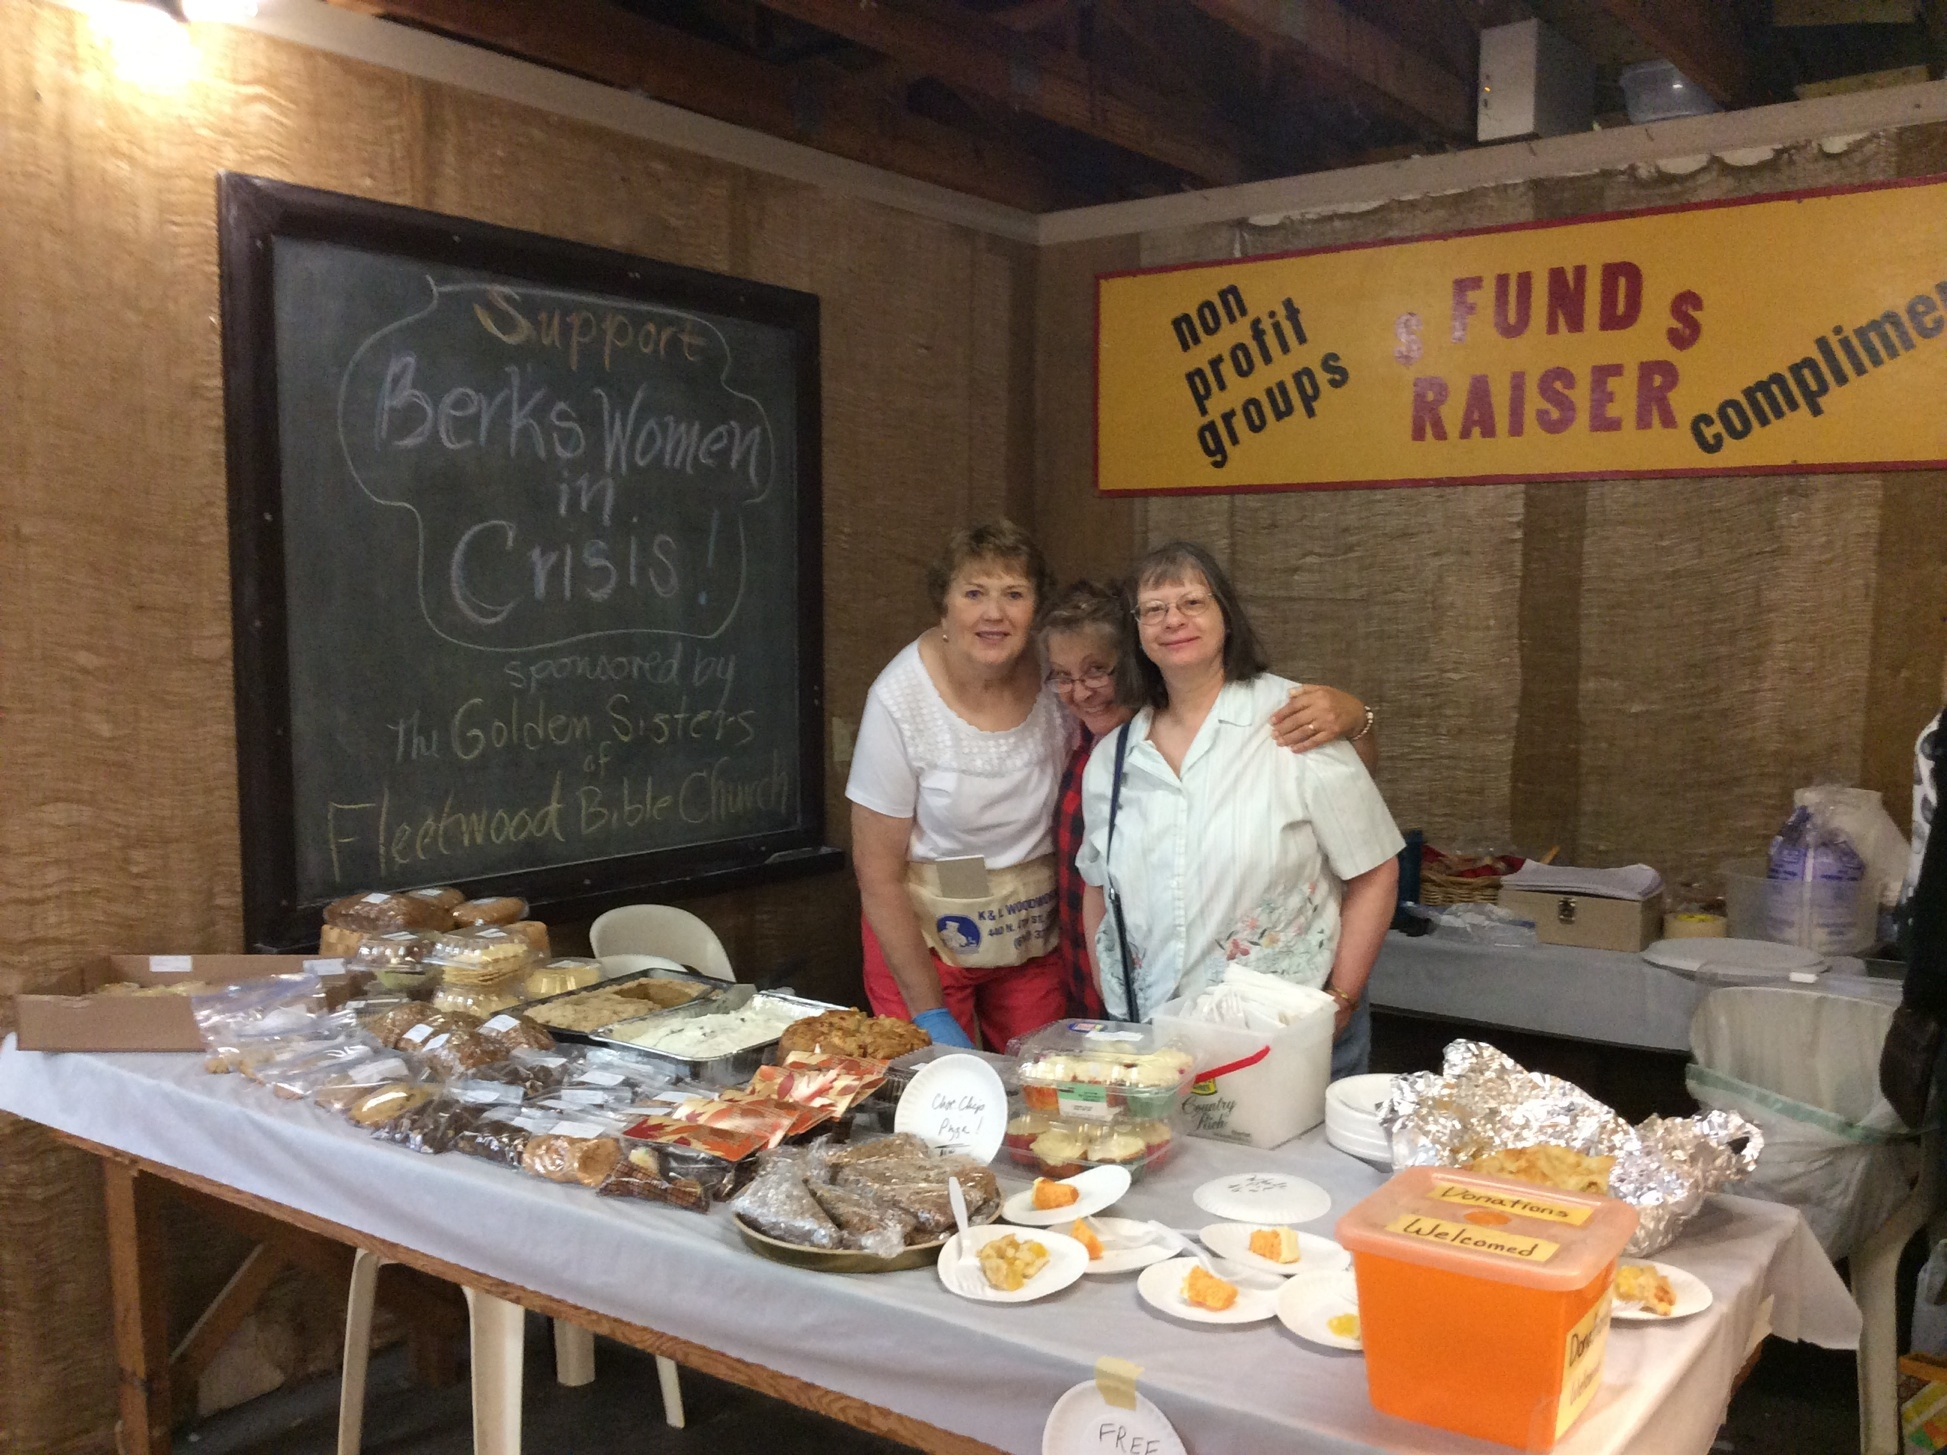 IThe Golden Sisters from Fleetwood Bible Church hold fundraiser Bake Sale  at Renninger's Farmers Market Kutztown.